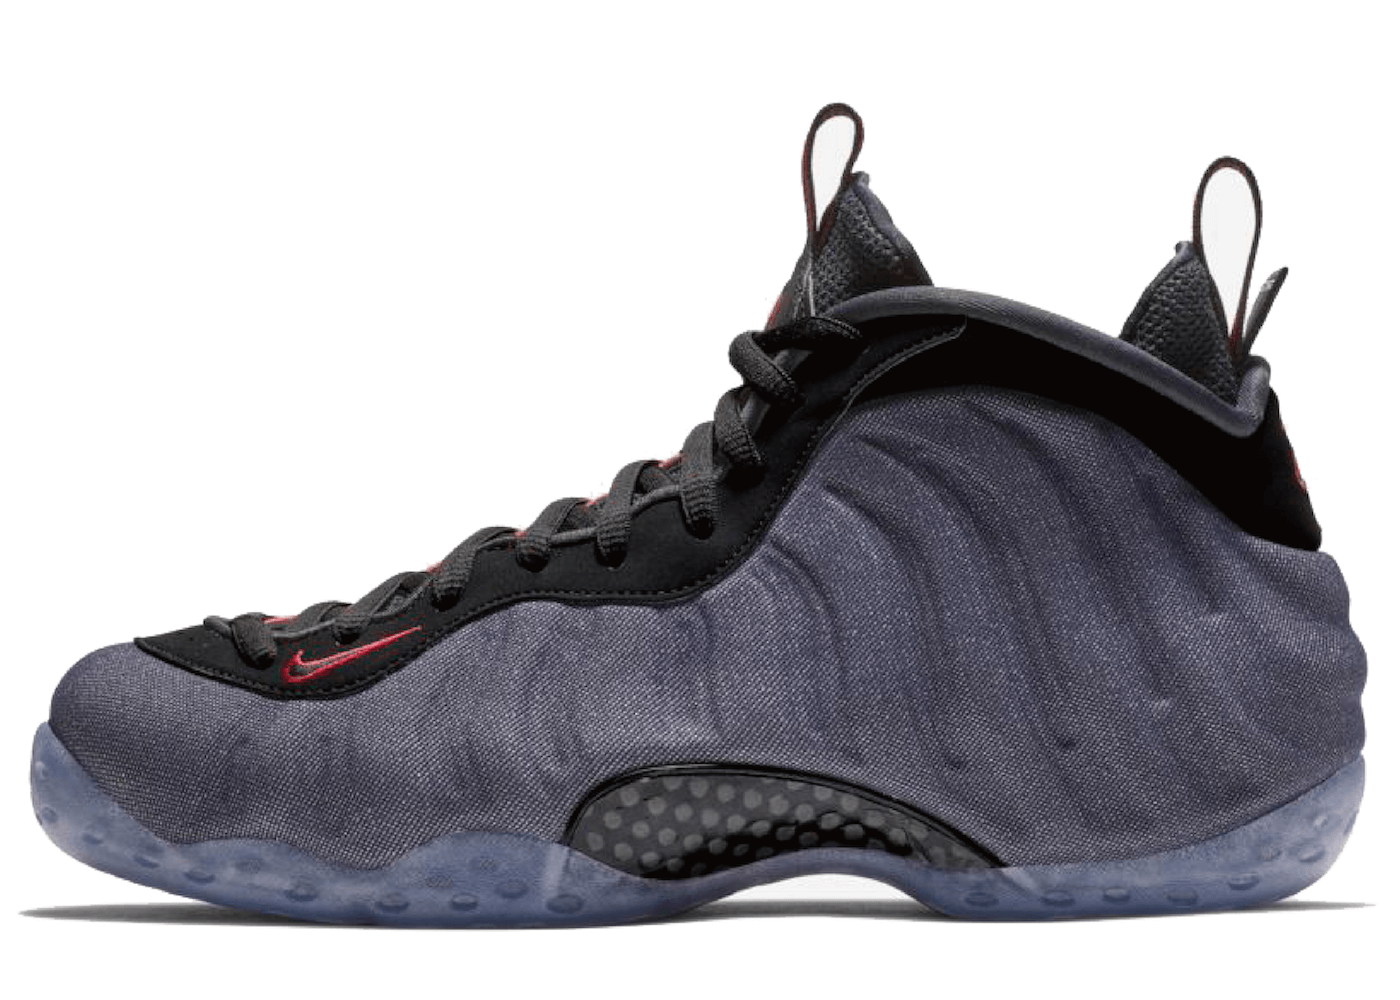 Nike Air Foamposite One Denimの写真